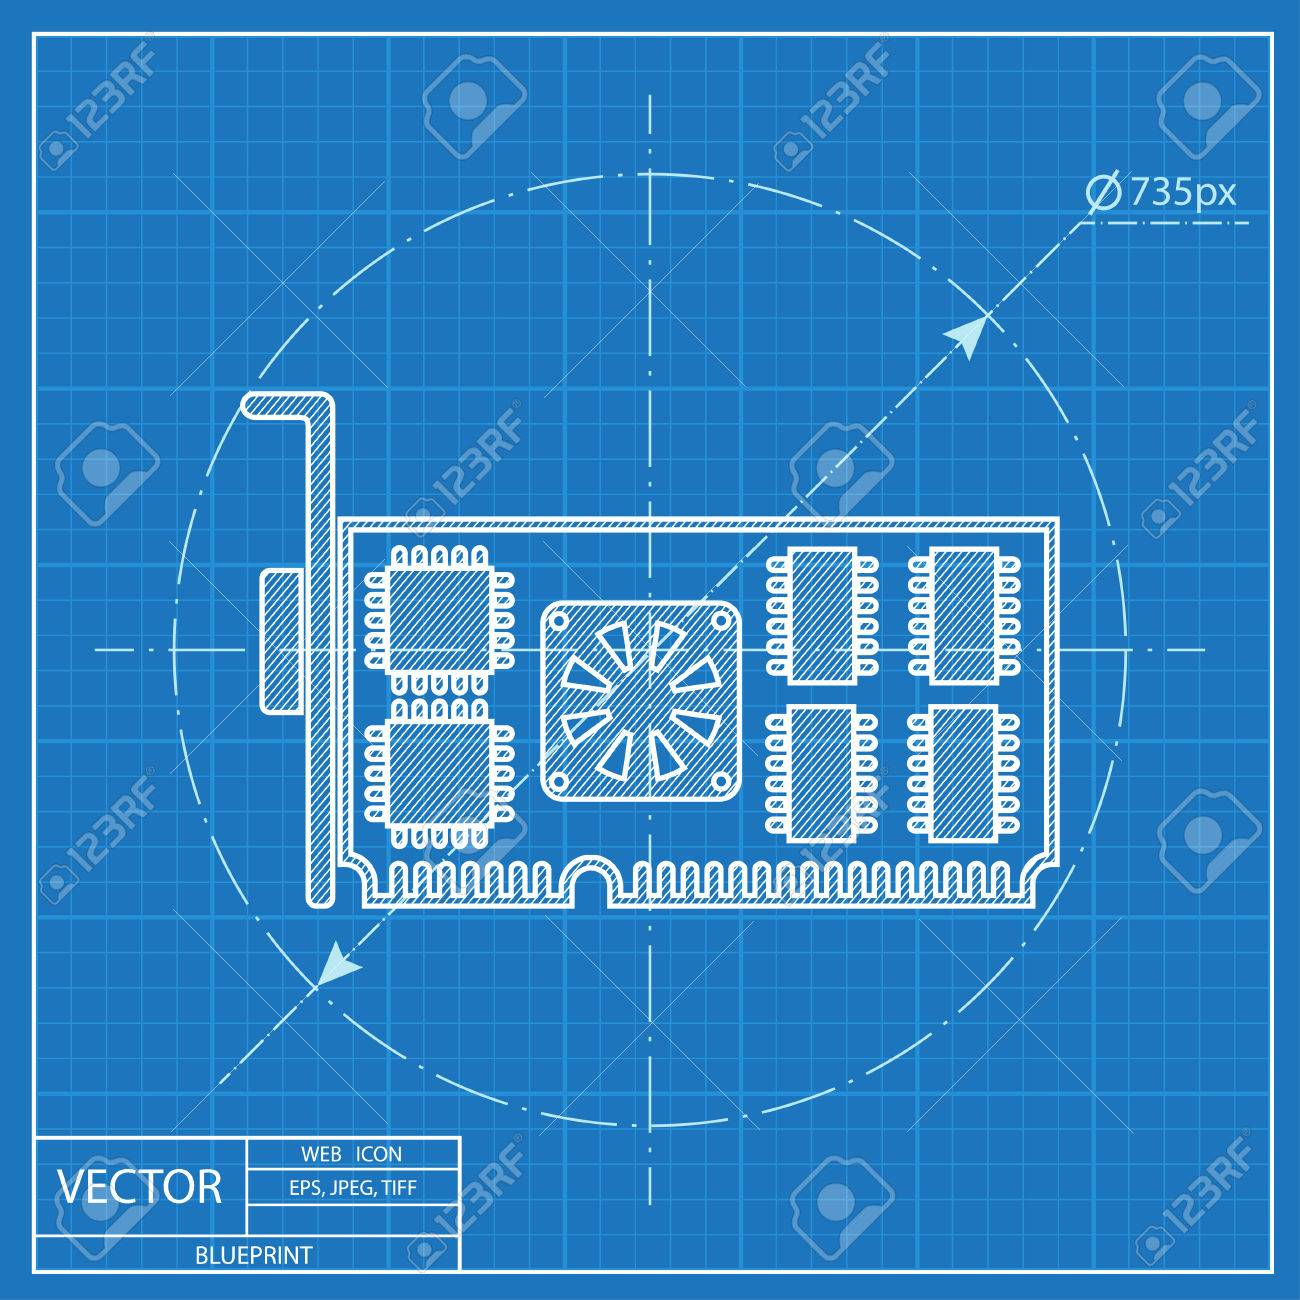 Blueprint icon of computer video card royalty free cliparts vectors blueprint icon of computer video card stock vector 55574183 malvernweather Choice Image